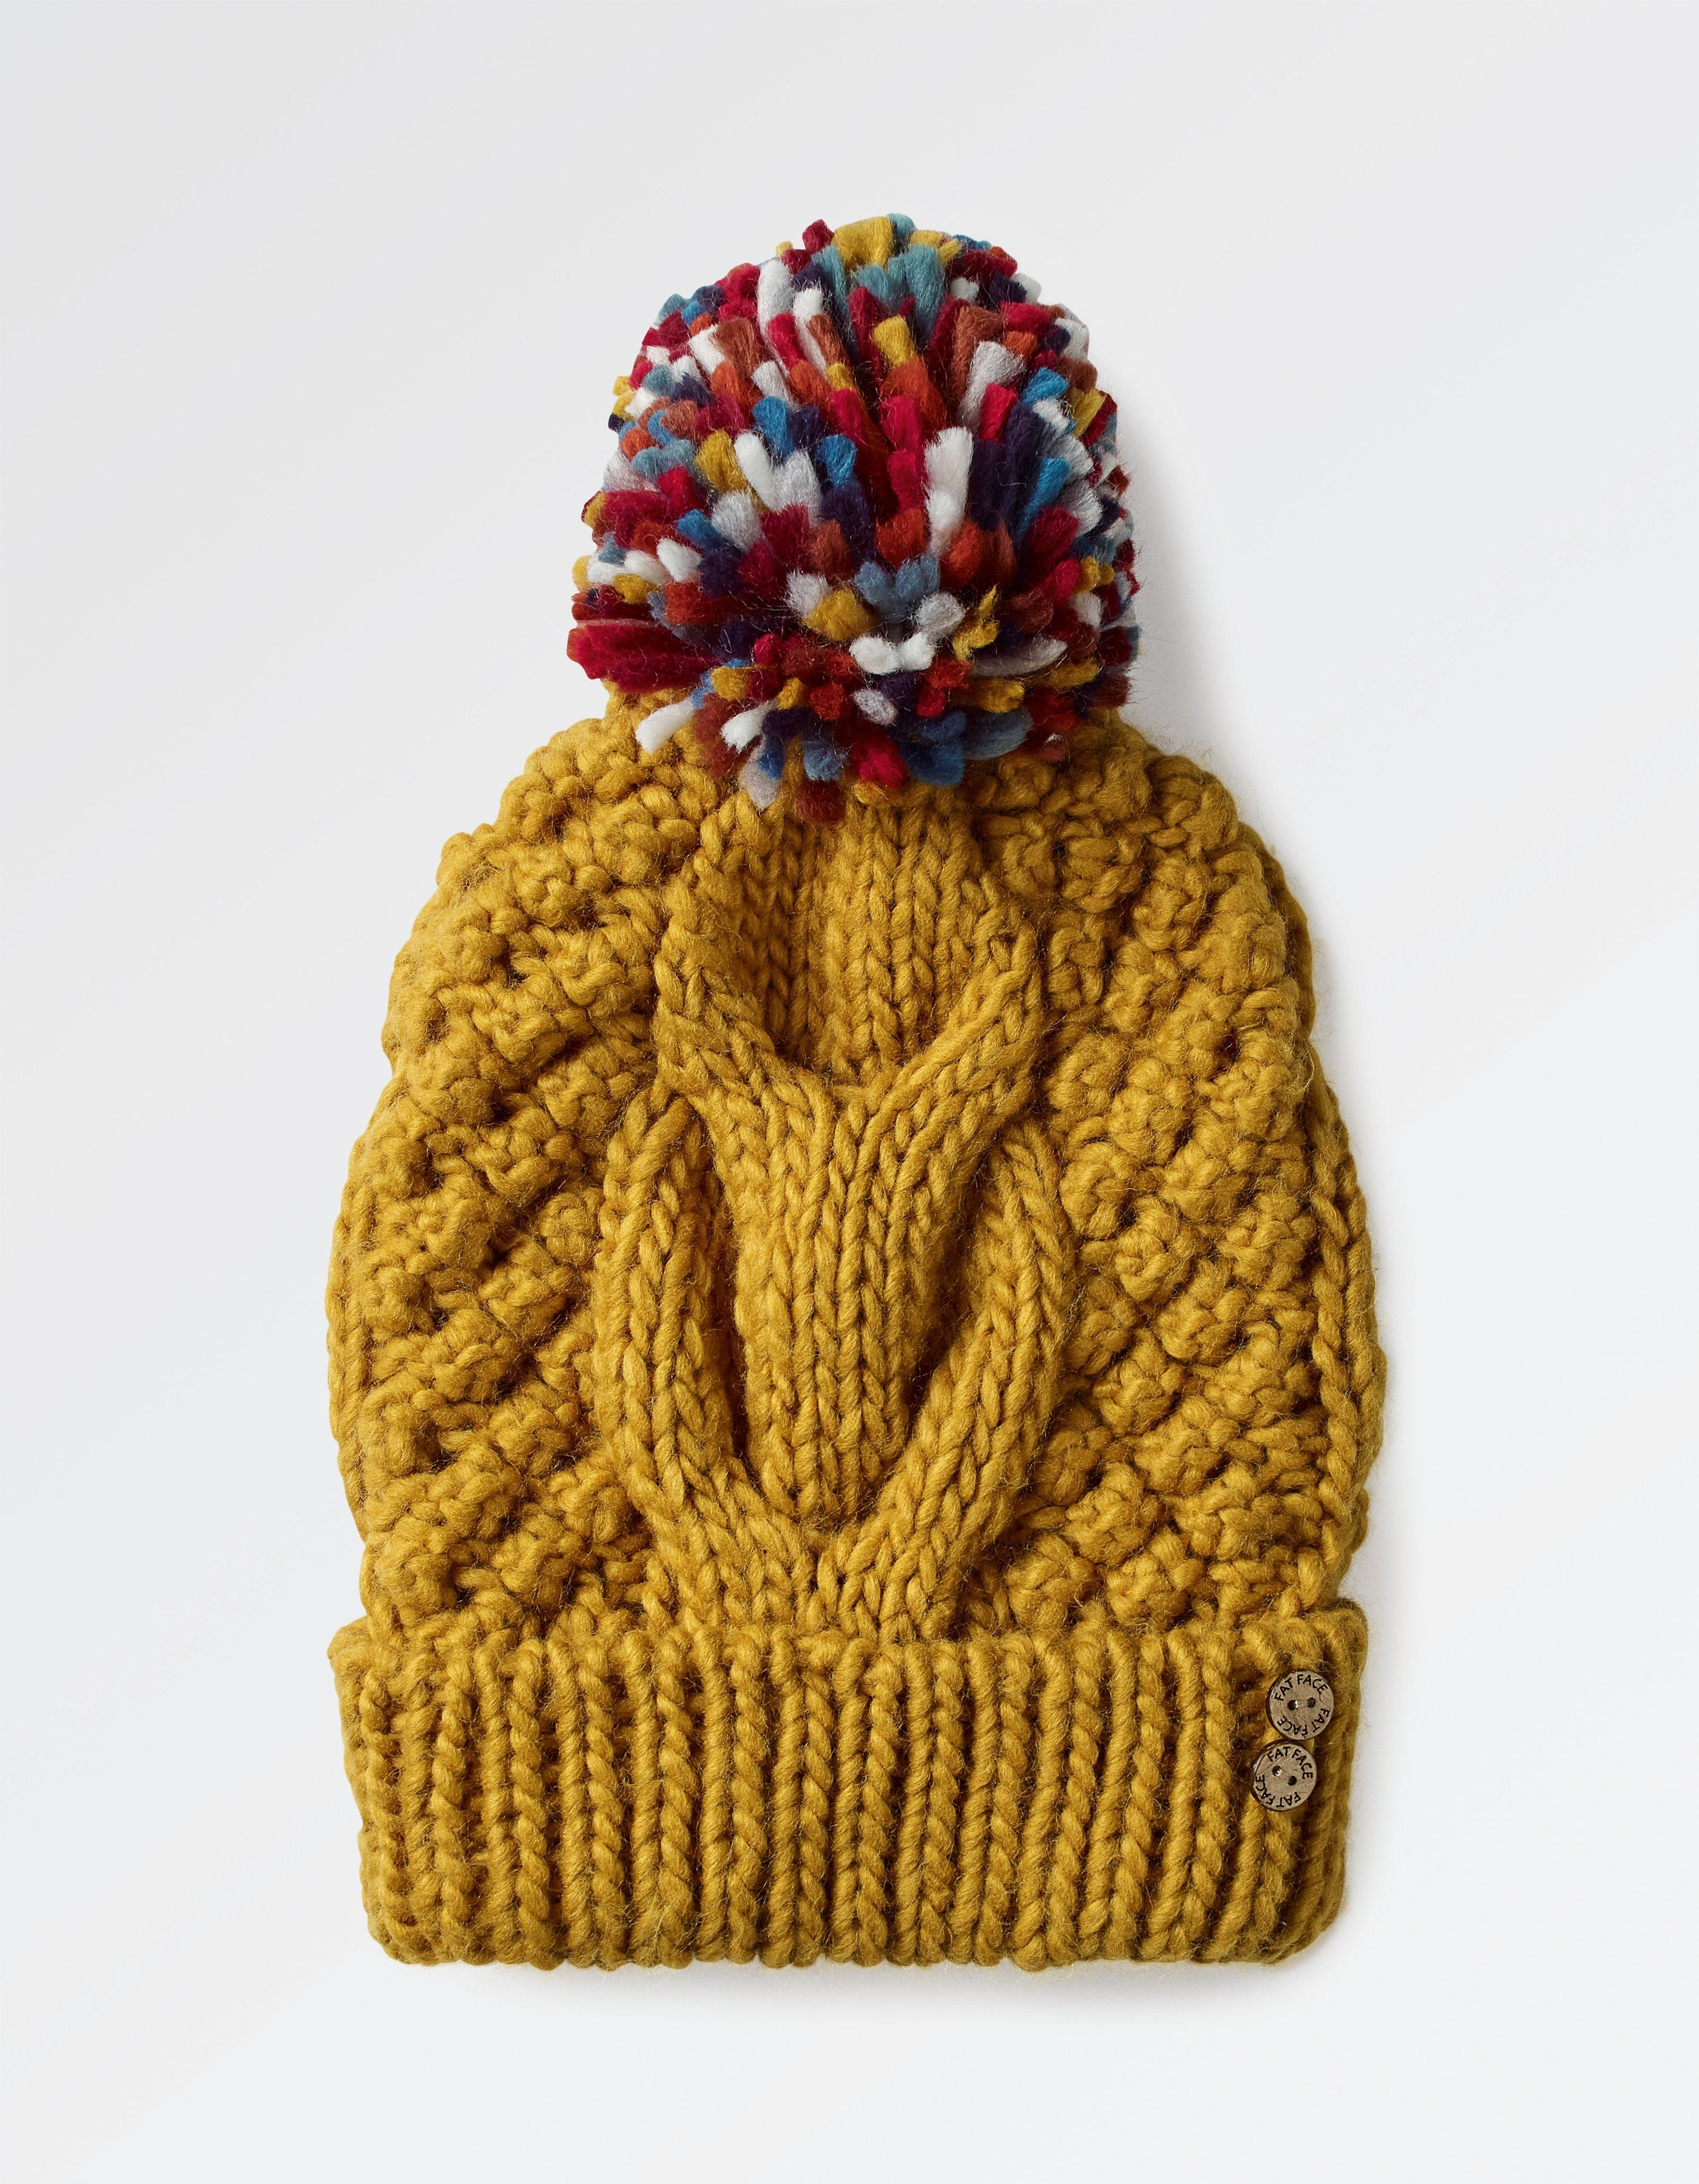 aaf8e50c48 Pin by Kristen Gagnon on Christmas list 2017 in 2019 | Hats, Knitted ...